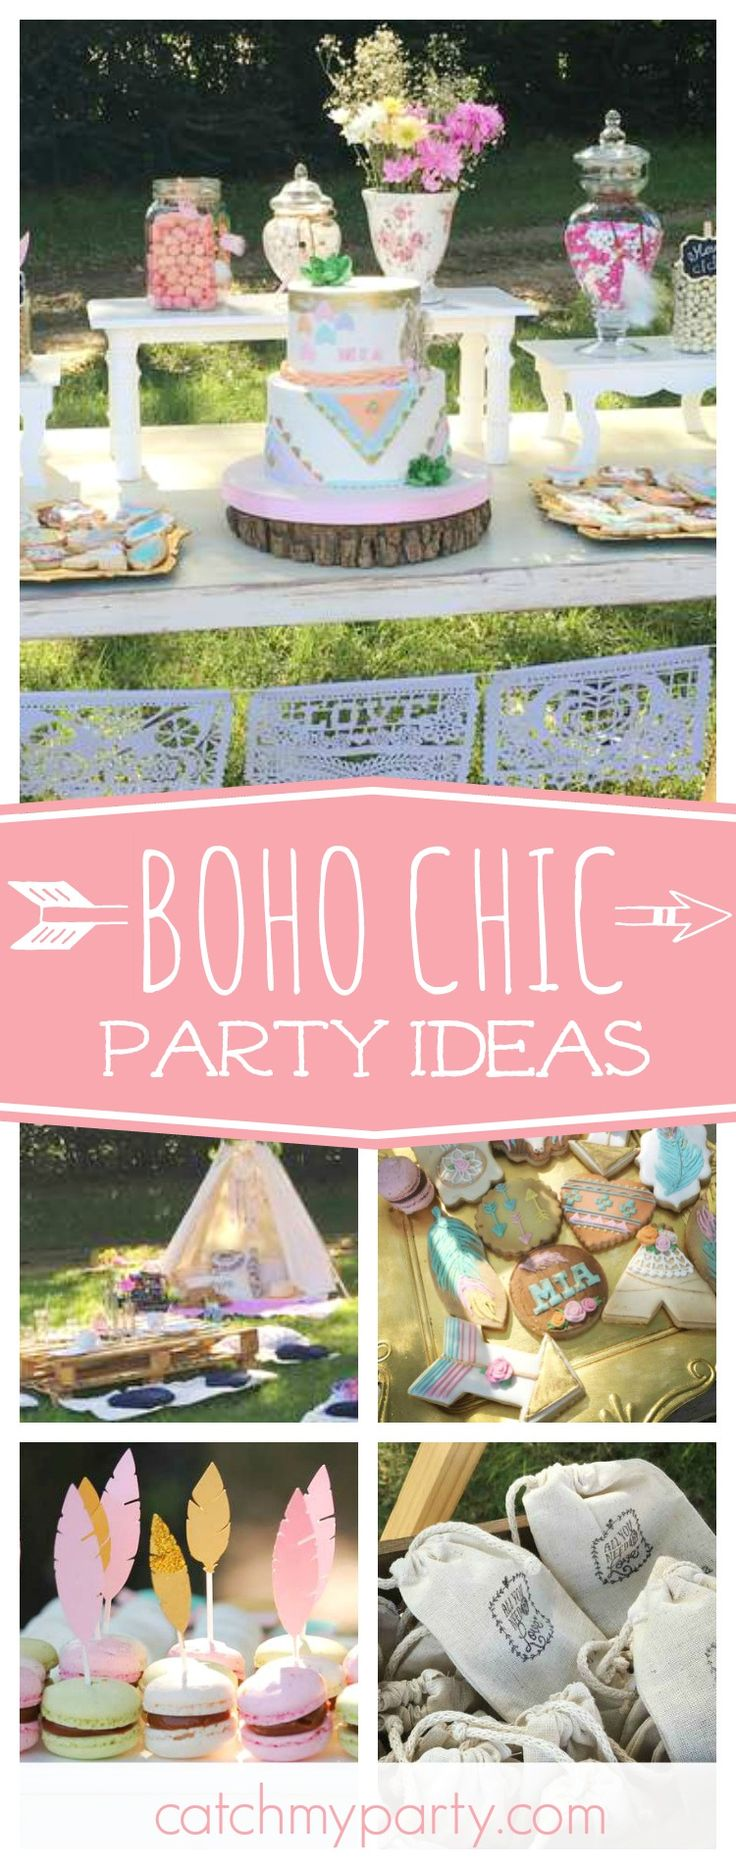 Don't miss this beautiful boho chic birthday party. The outdoor table settings and tents are fantastic!! See more party ideas and share yours at CatchMyParty.com